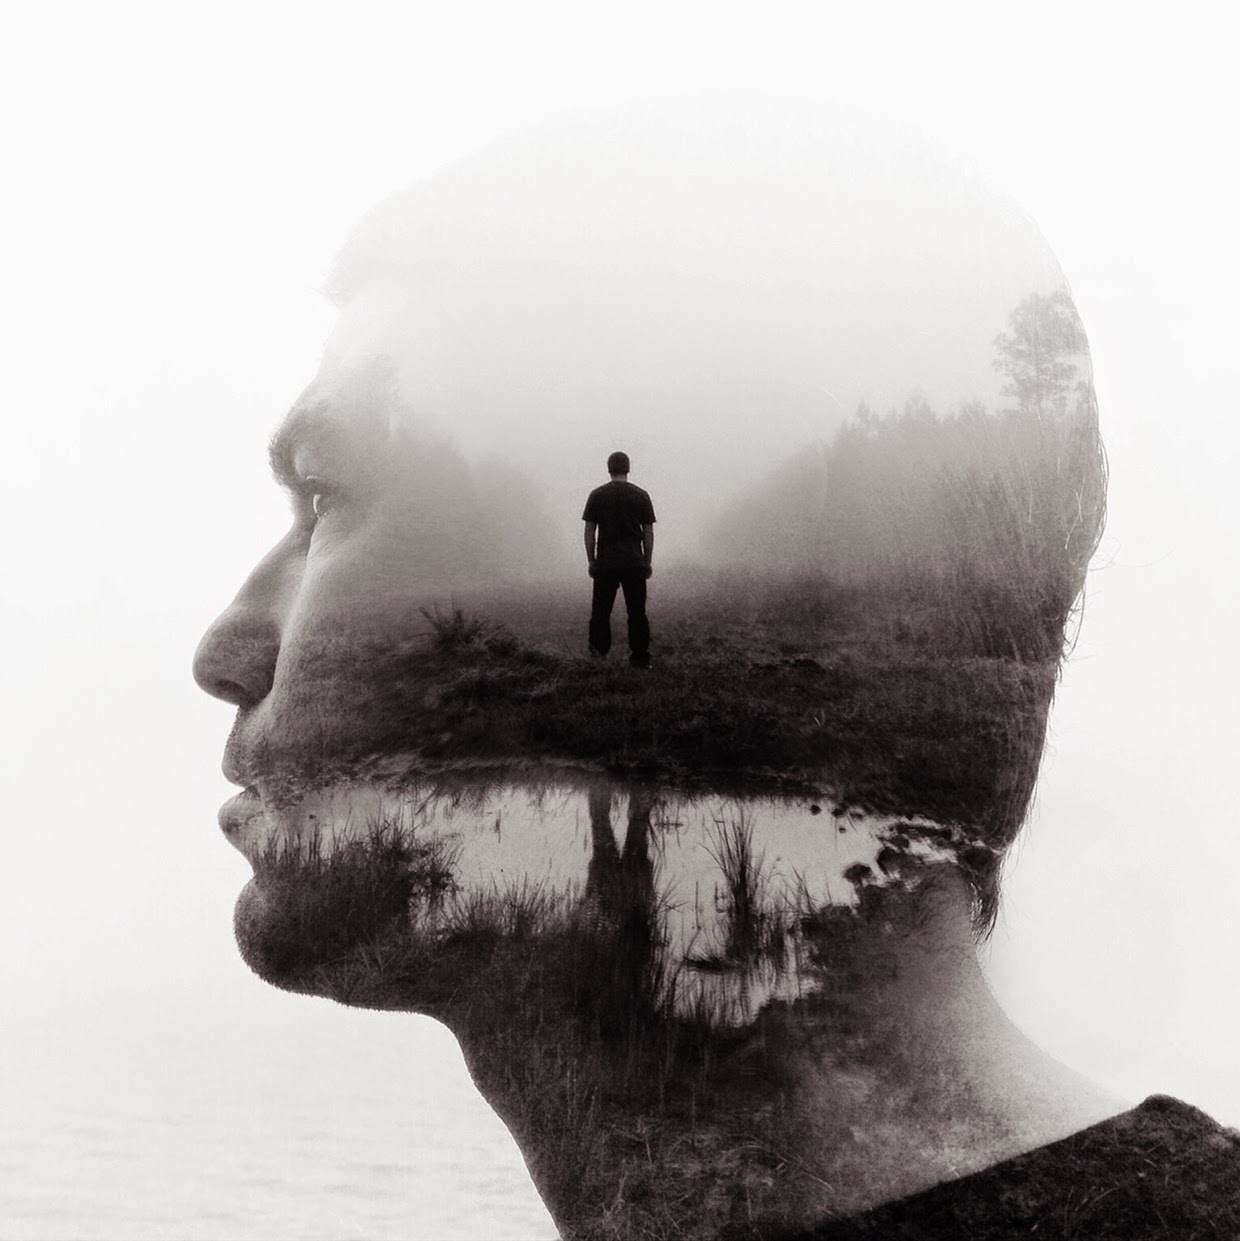 13-Brandon-Kidwell-Stories-in-Double-Exposure-Portrait-Photographs-www-designstack-co